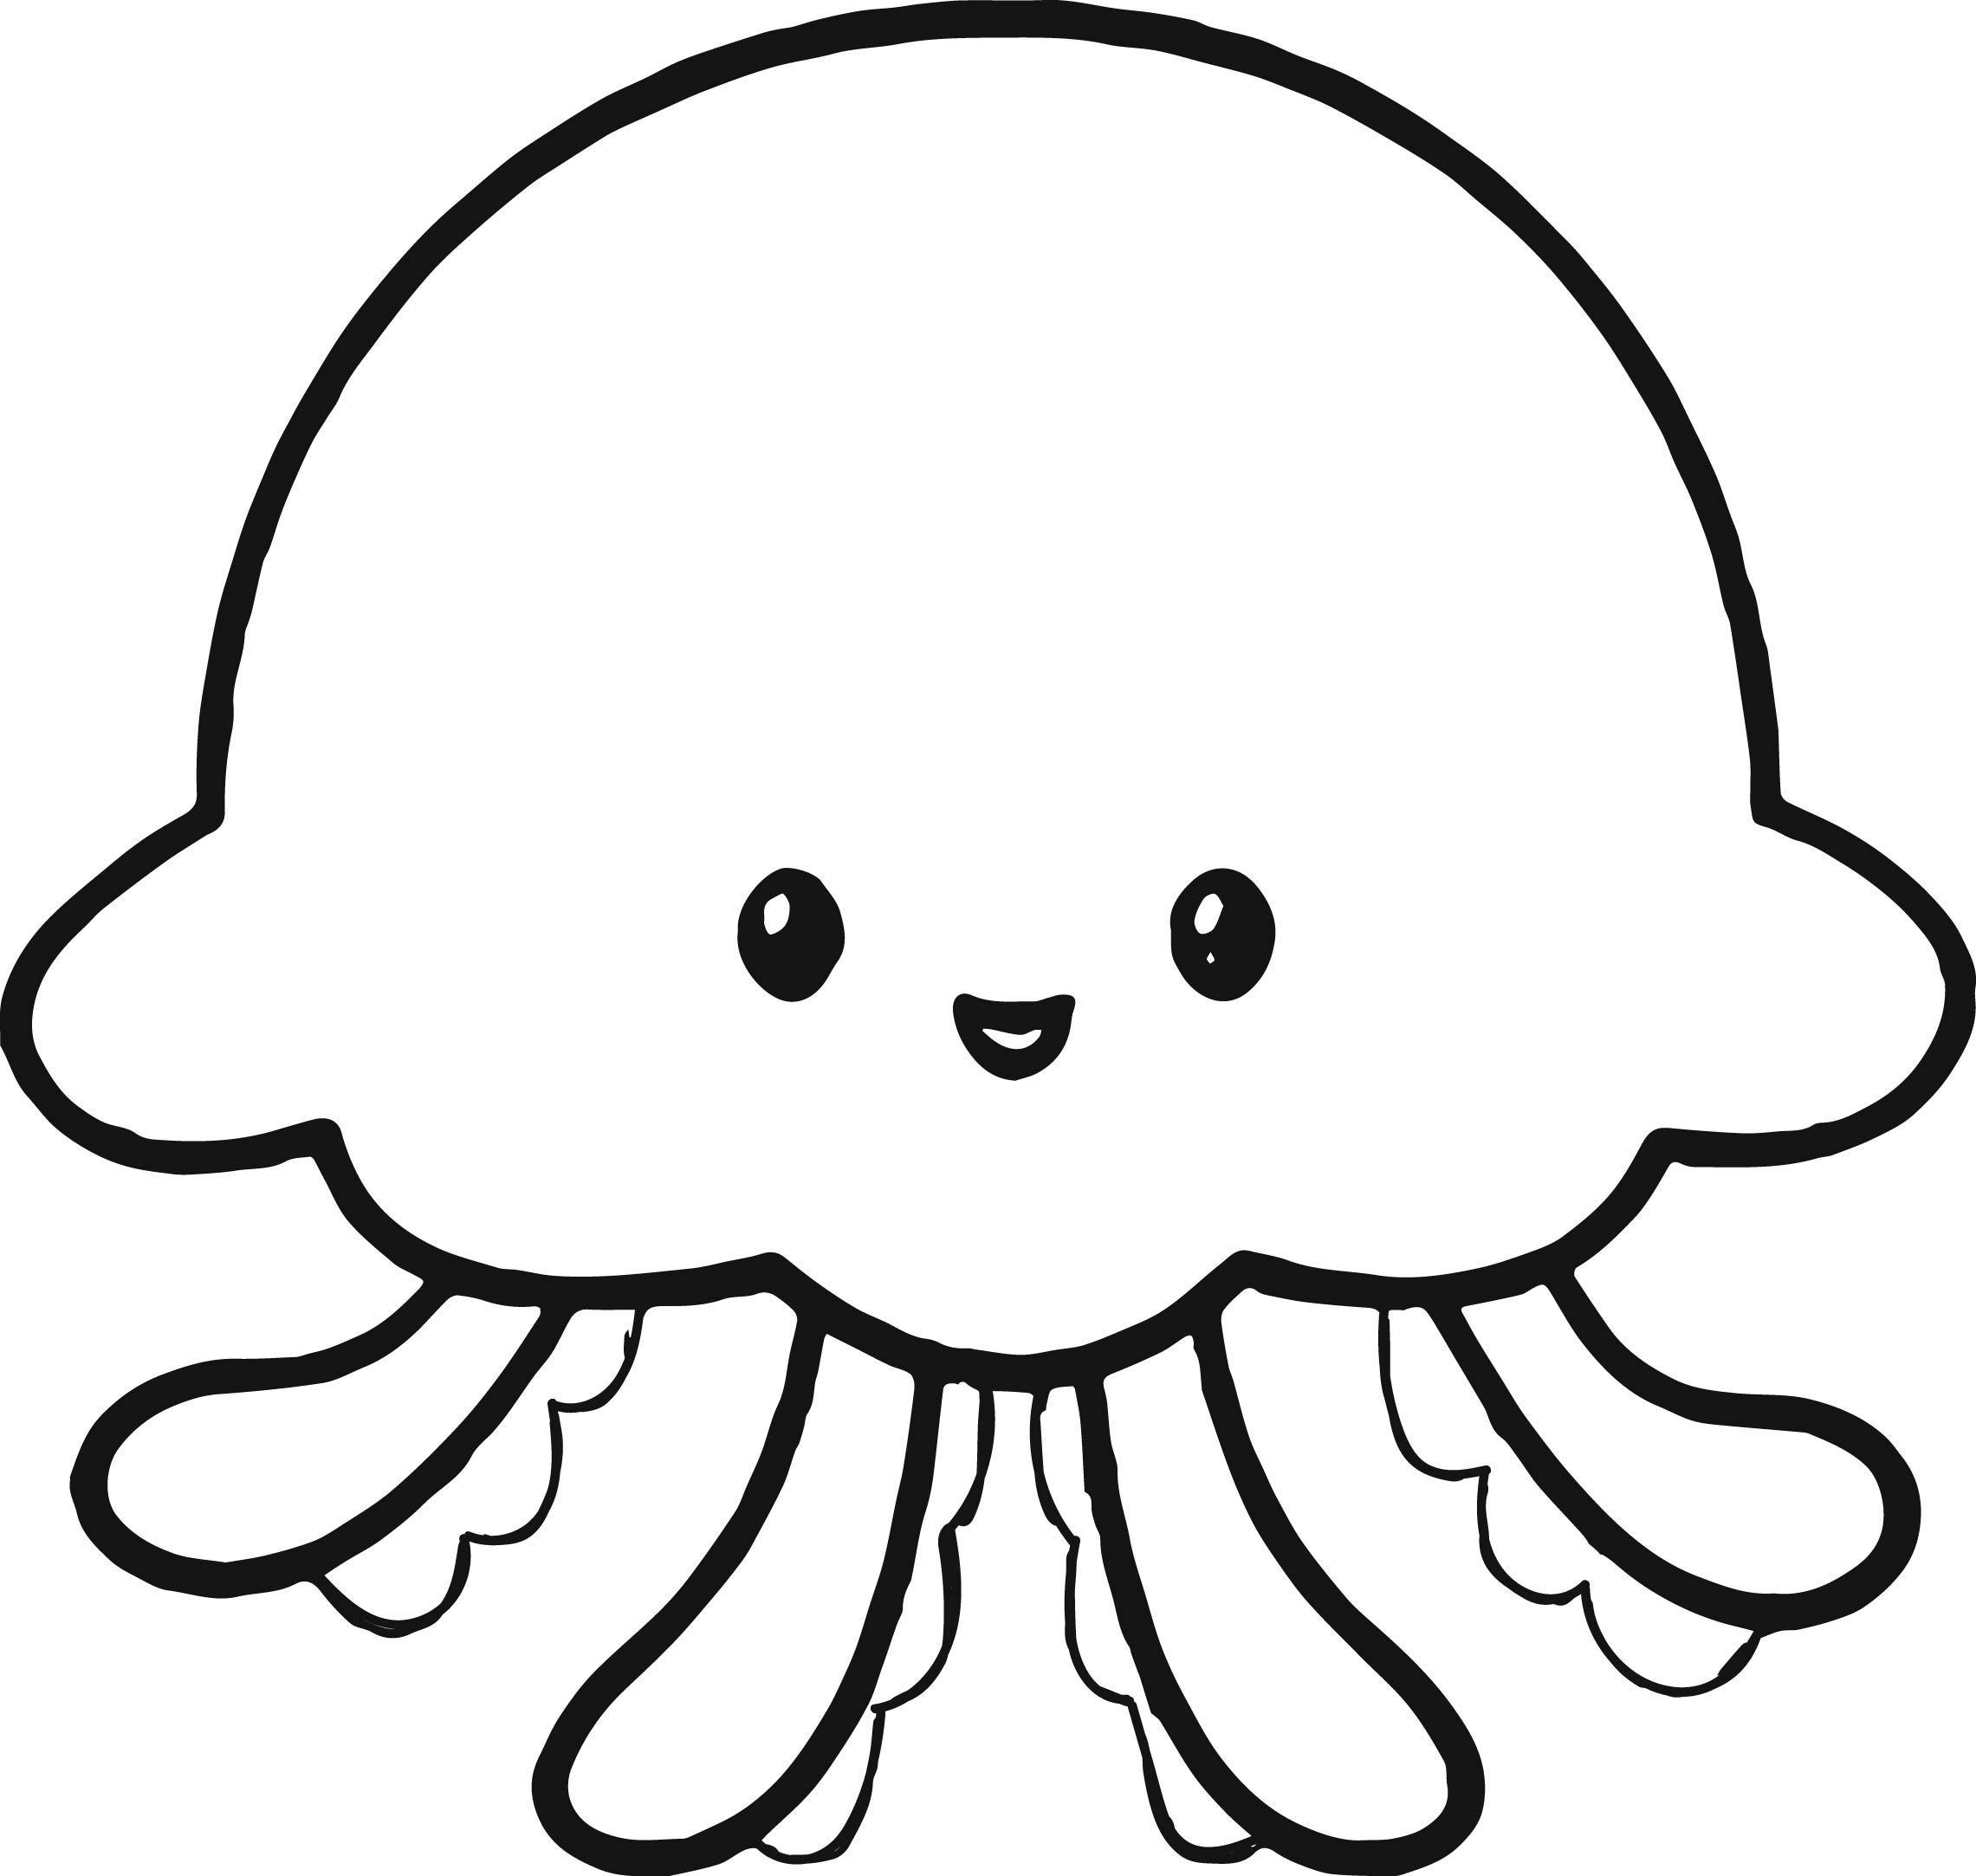 Cute Jellyfish Coloring Page Wecoloringpage